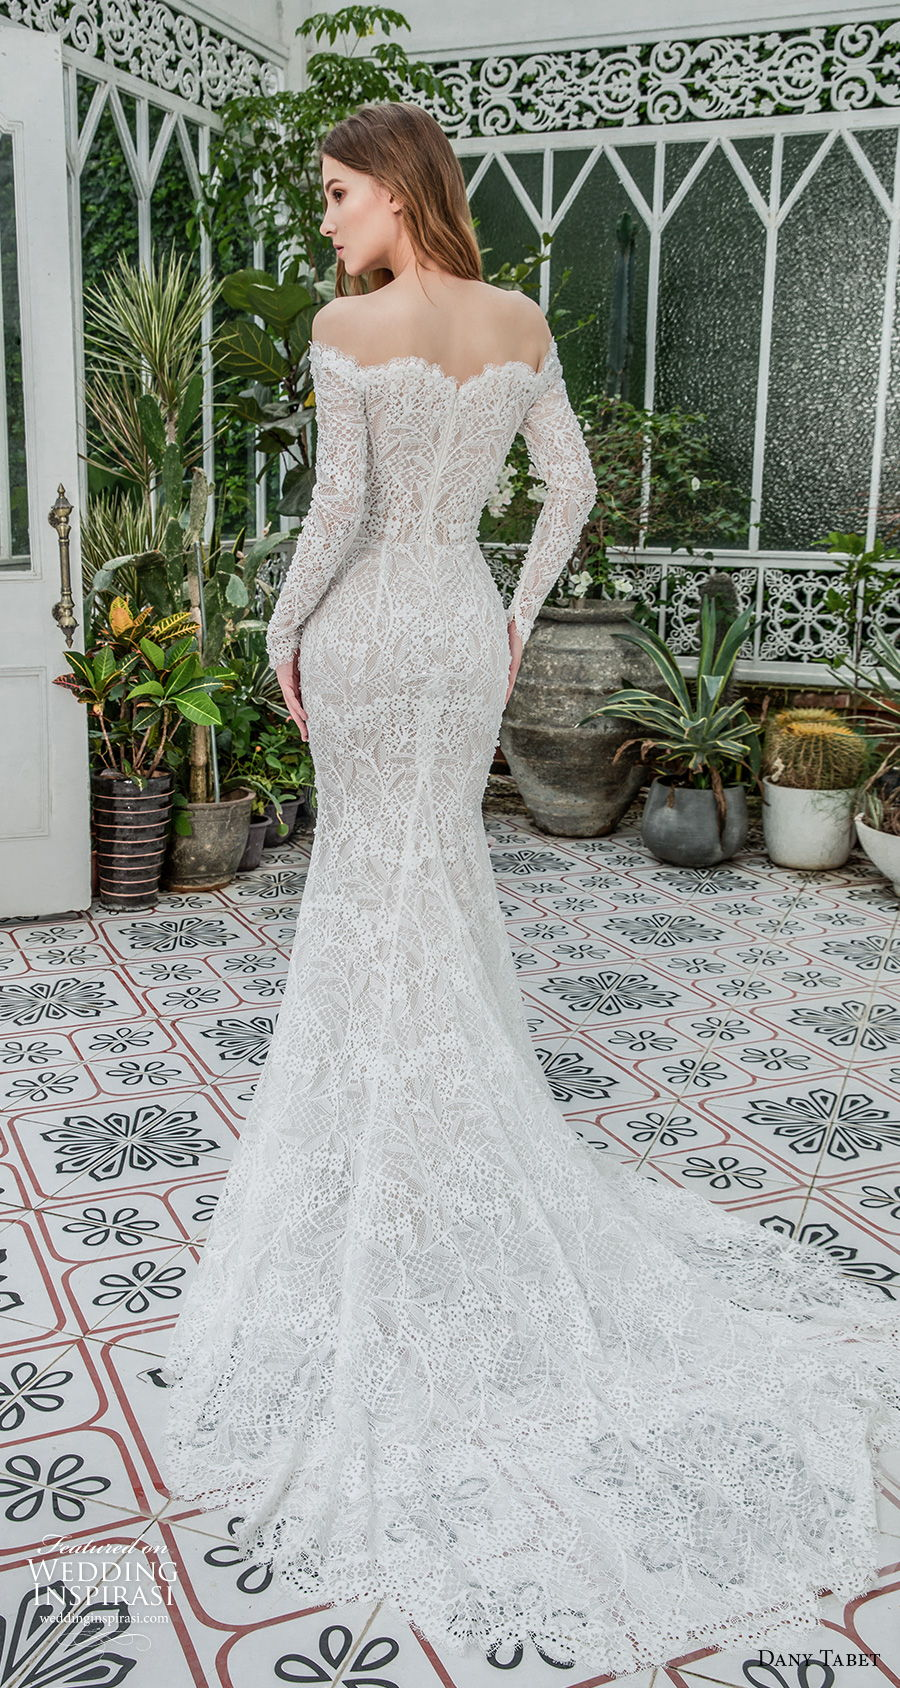 dany tabet 2021 emerge bridal long sleeves off the shoulder sweetheart neckline full embellishment elegant fit and flare wedding dress covered lace back chapel train (8) bv